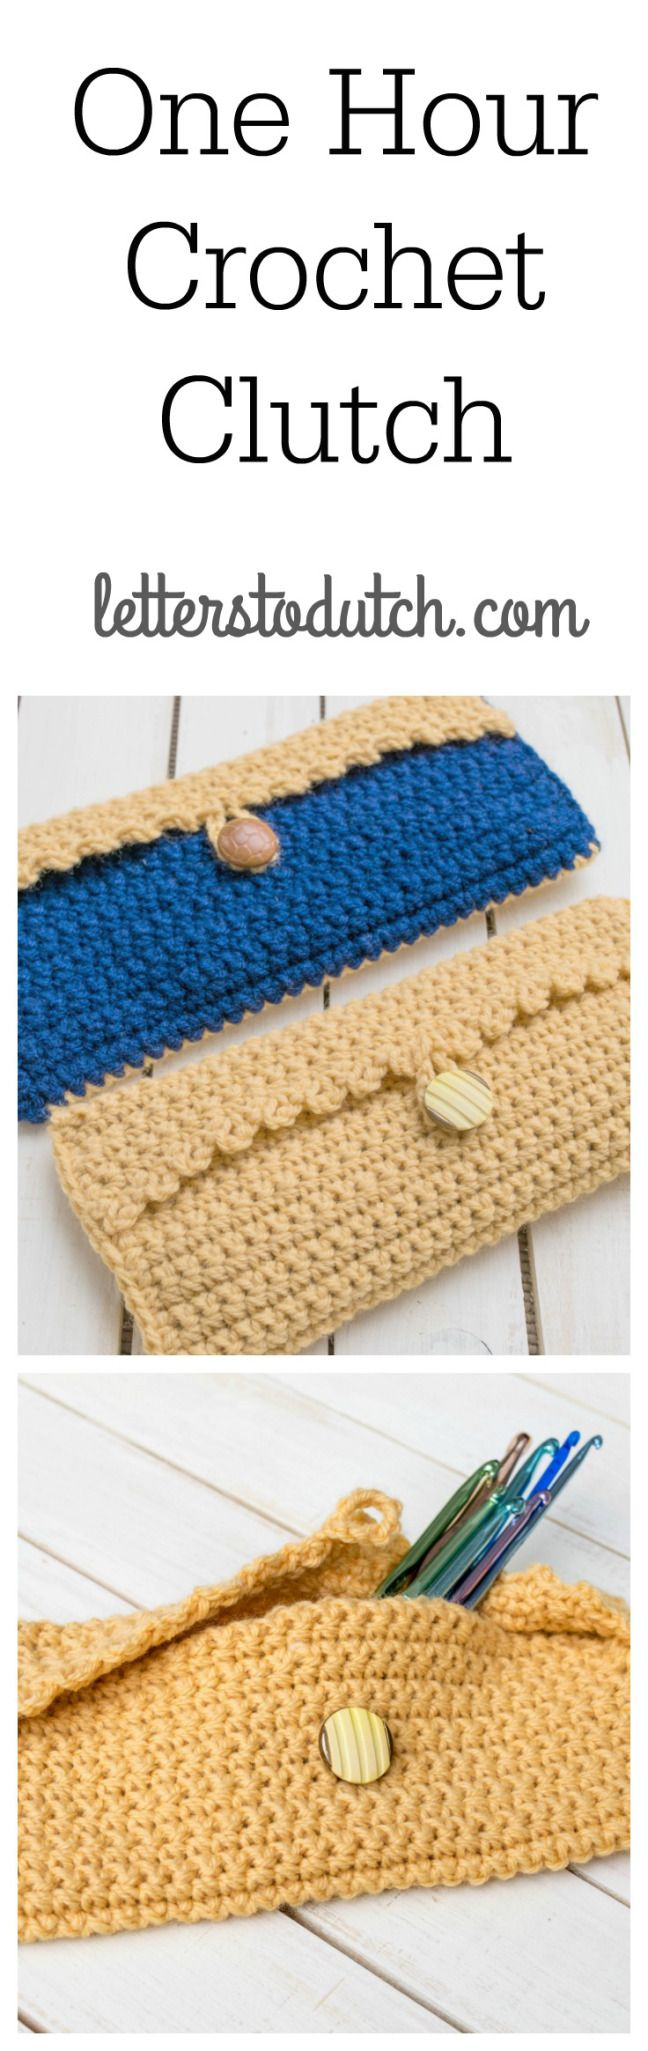 Free crochet pattern clutch bag manet for 25 best ideas about crochet clutch on pinterest crochet free crochet pattern clutch bag bankloansurffo Gallery